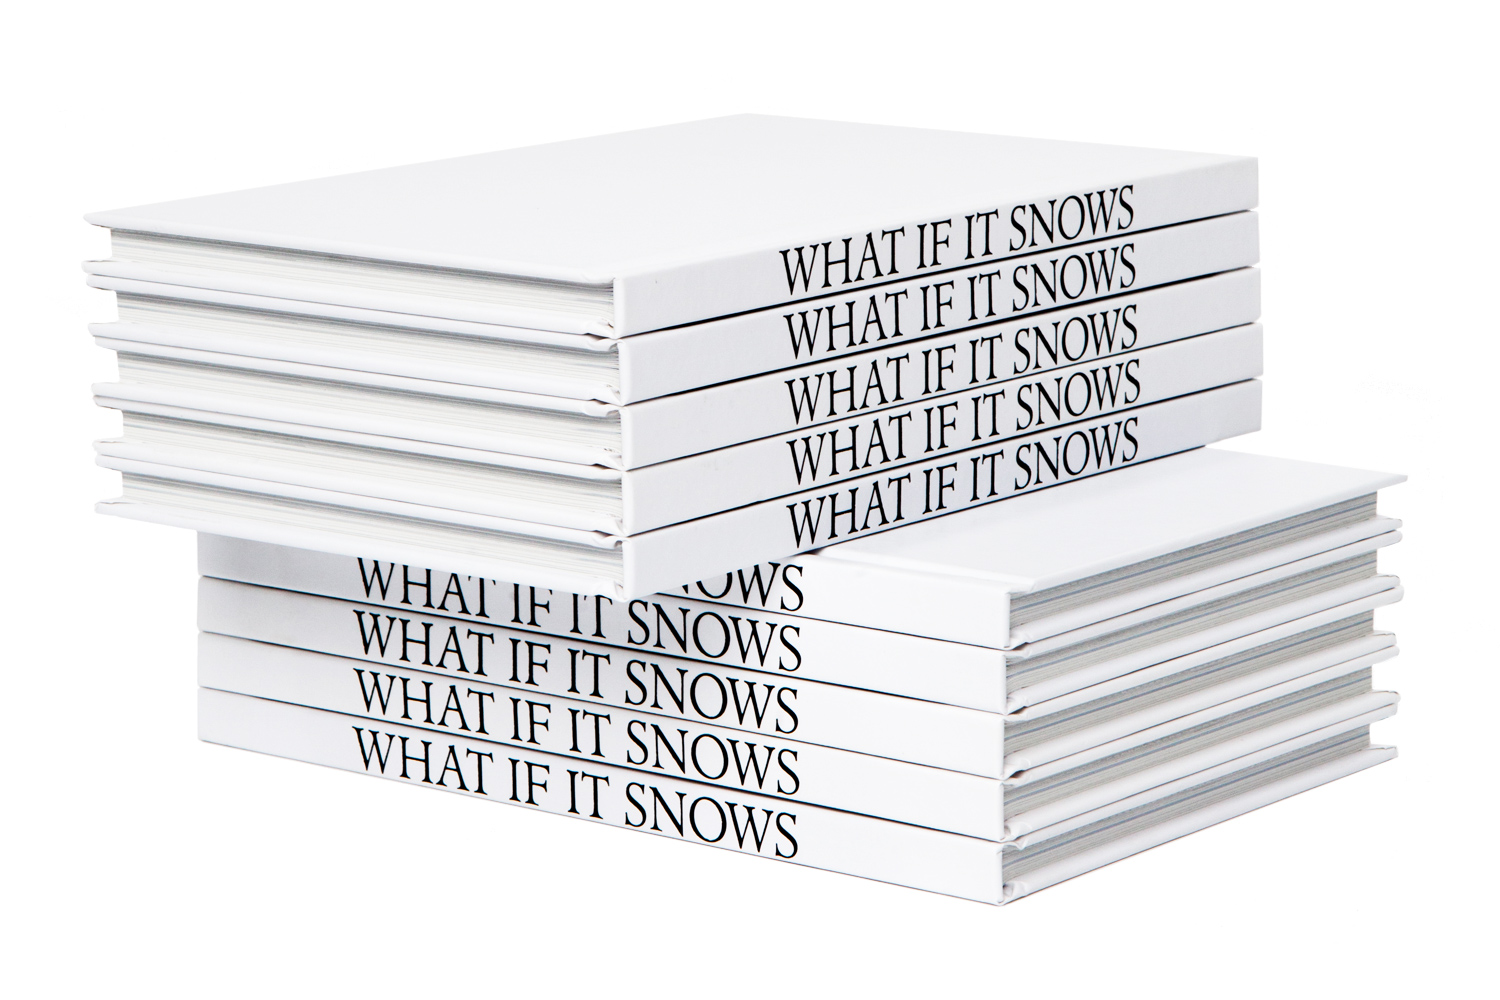 AlbertRomagosa_HUNCH_Whatifitsnows_Spines